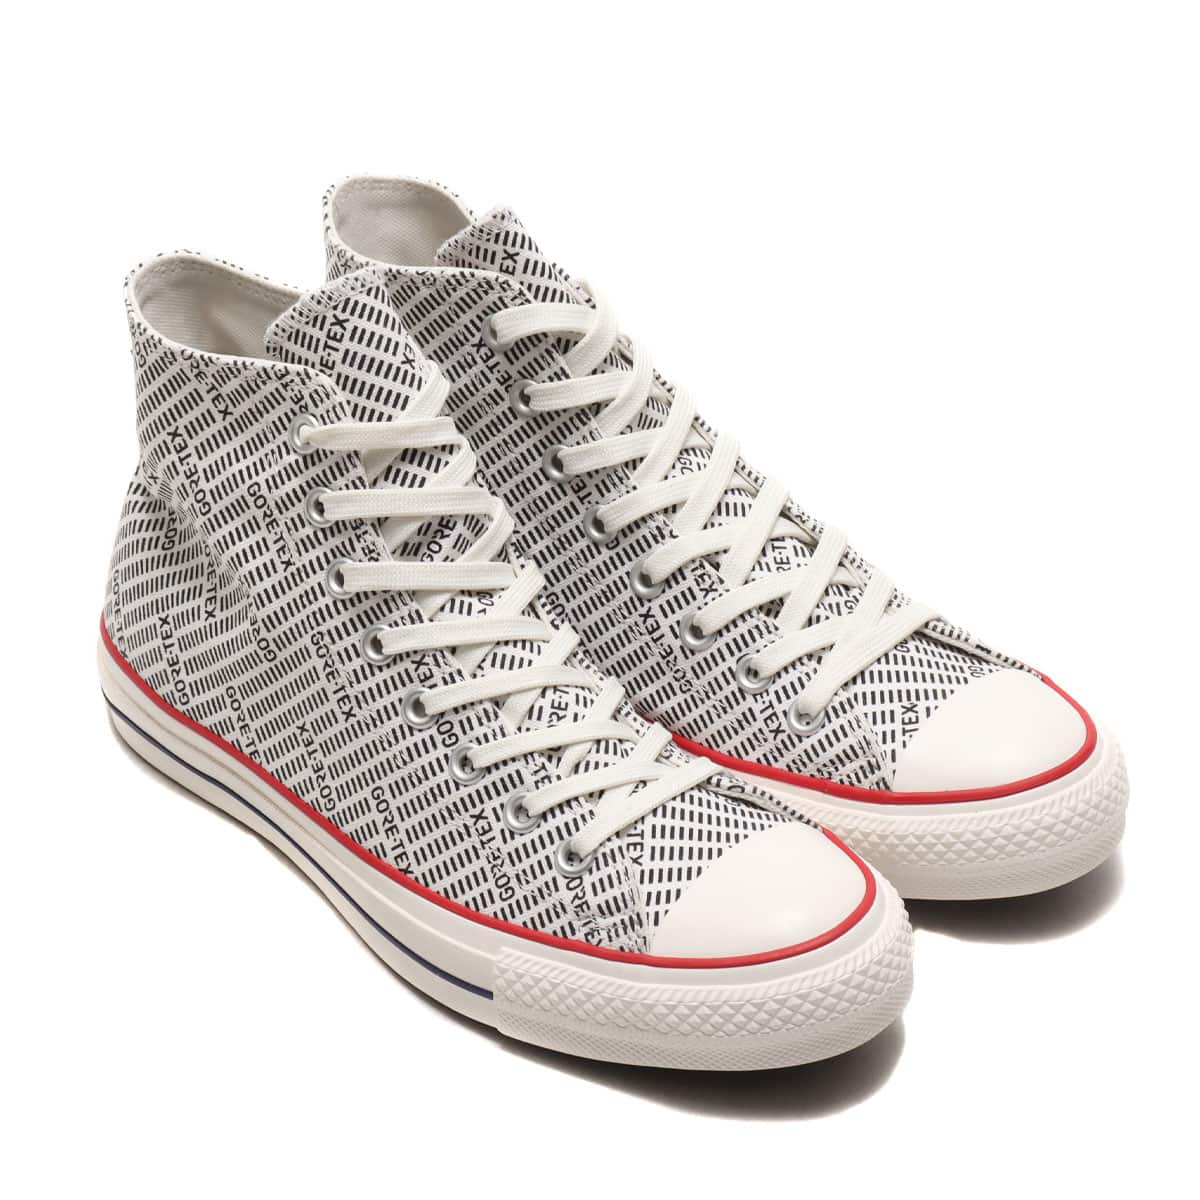 CONVERSE ALL STAR 100 GORE-TEX LG HI ホワイト 20FW-I_photo_large